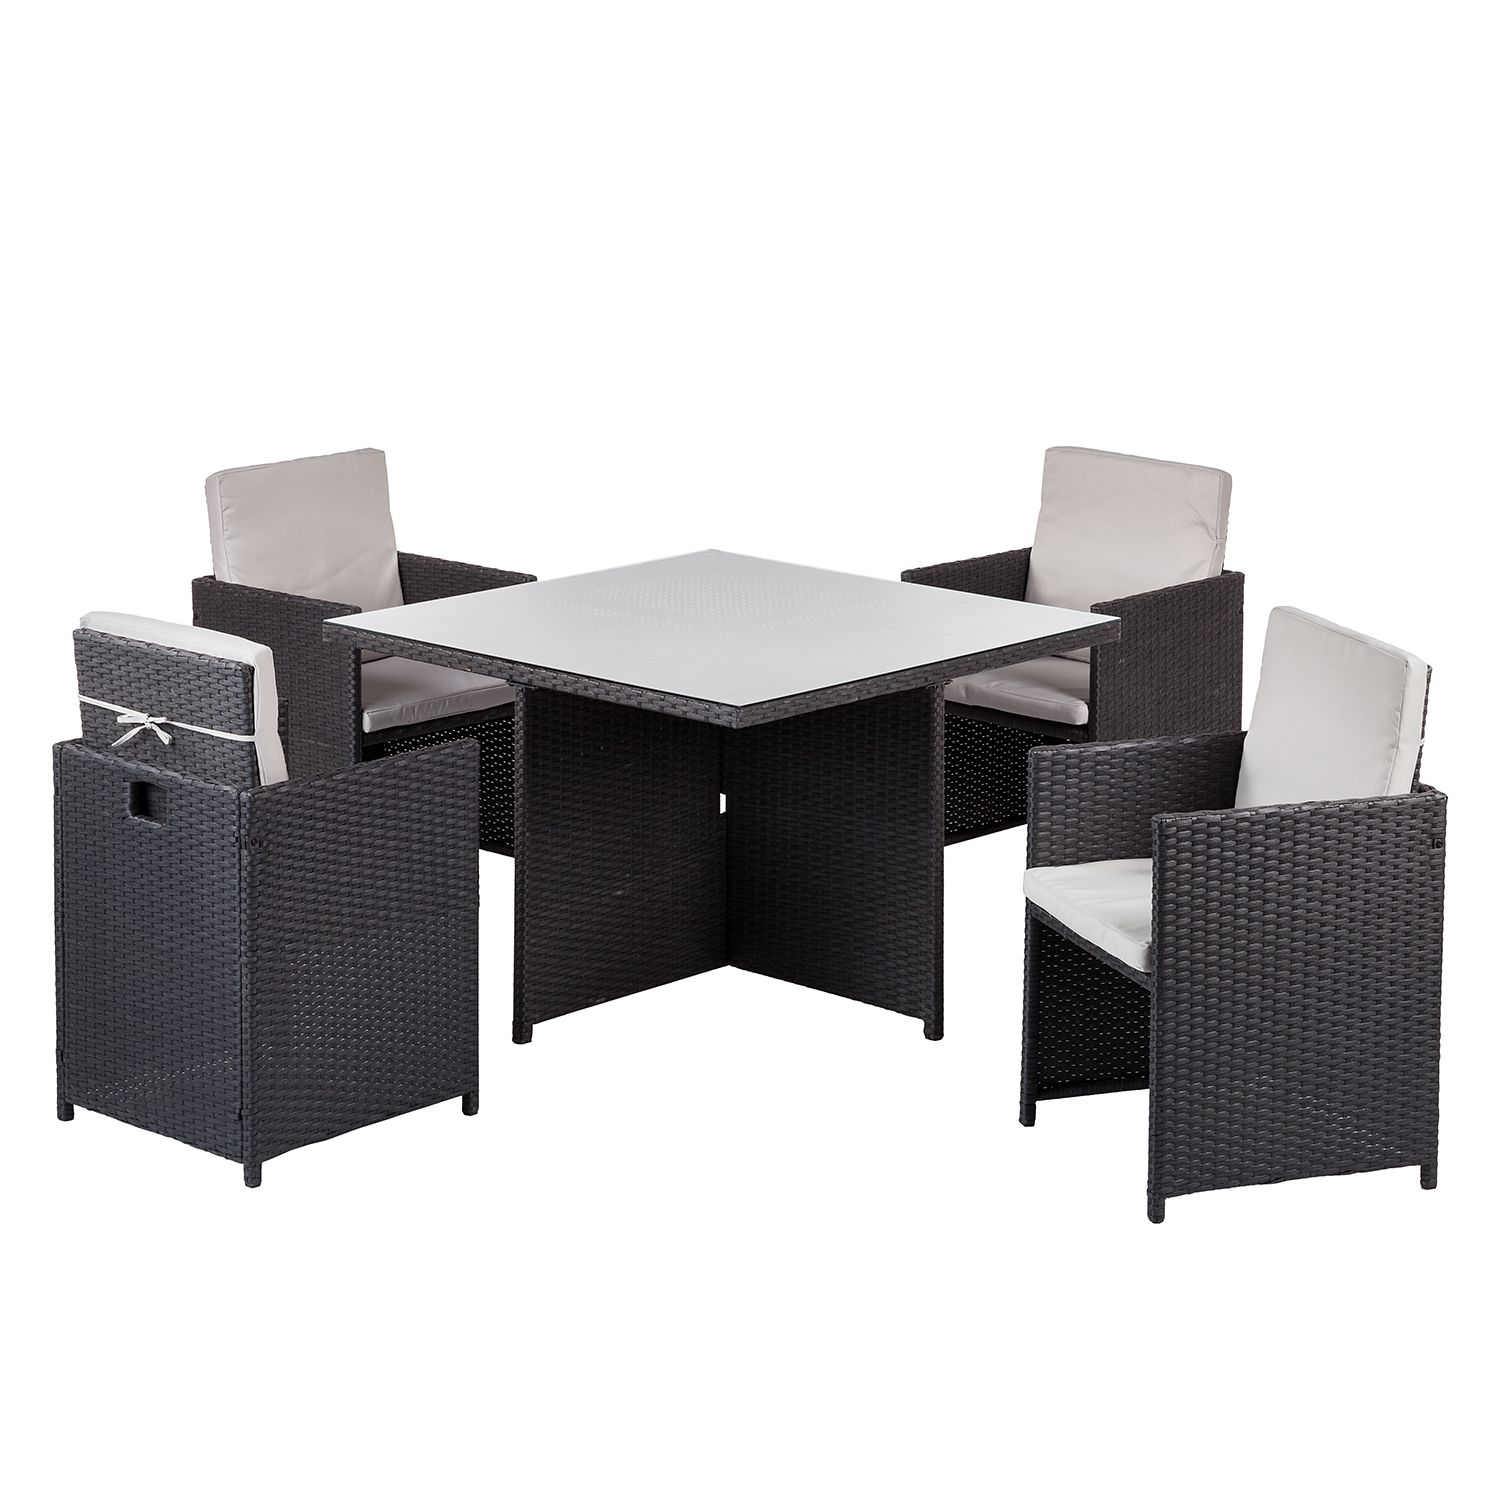 essgruppe paradise lounge i 5 teilig glas polyrattan. Black Bedroom Furniture Sets. Home Design Ideas